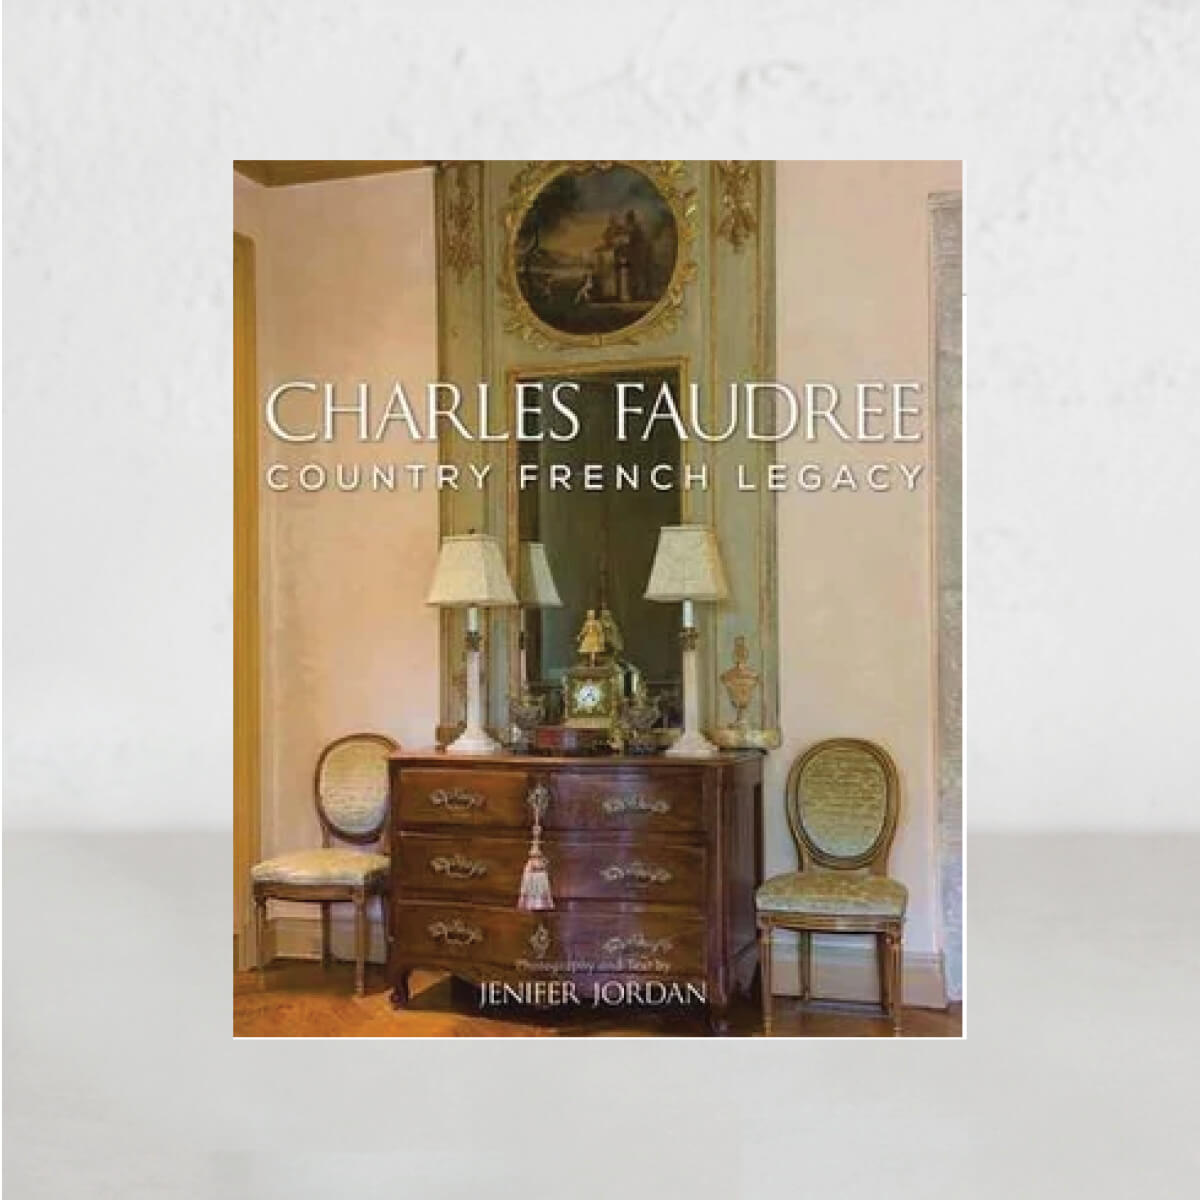 COUNTRY FRENCH LEGACY | CHARLES FAUDREE